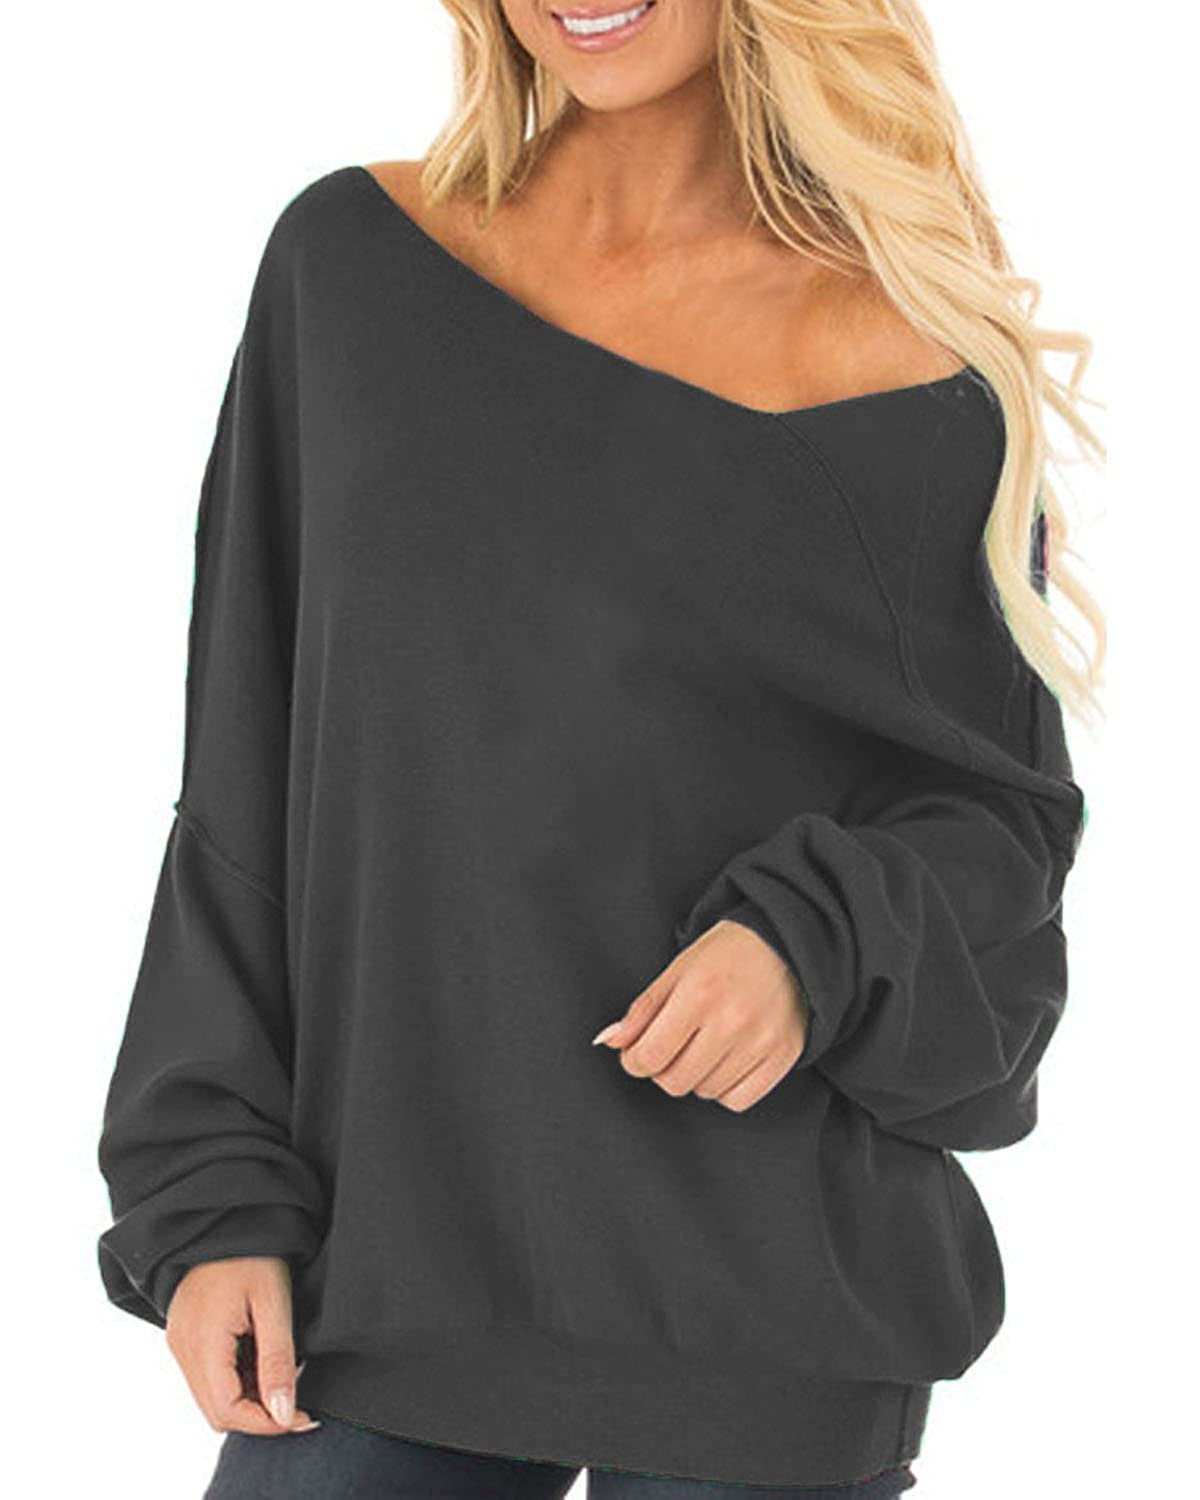 cd69a601f36 [ Features ] : Off shoulder, asymmetrical neckline, lantern sleeve, baggy,  loose sweater shirt; You can pull it down over the ...